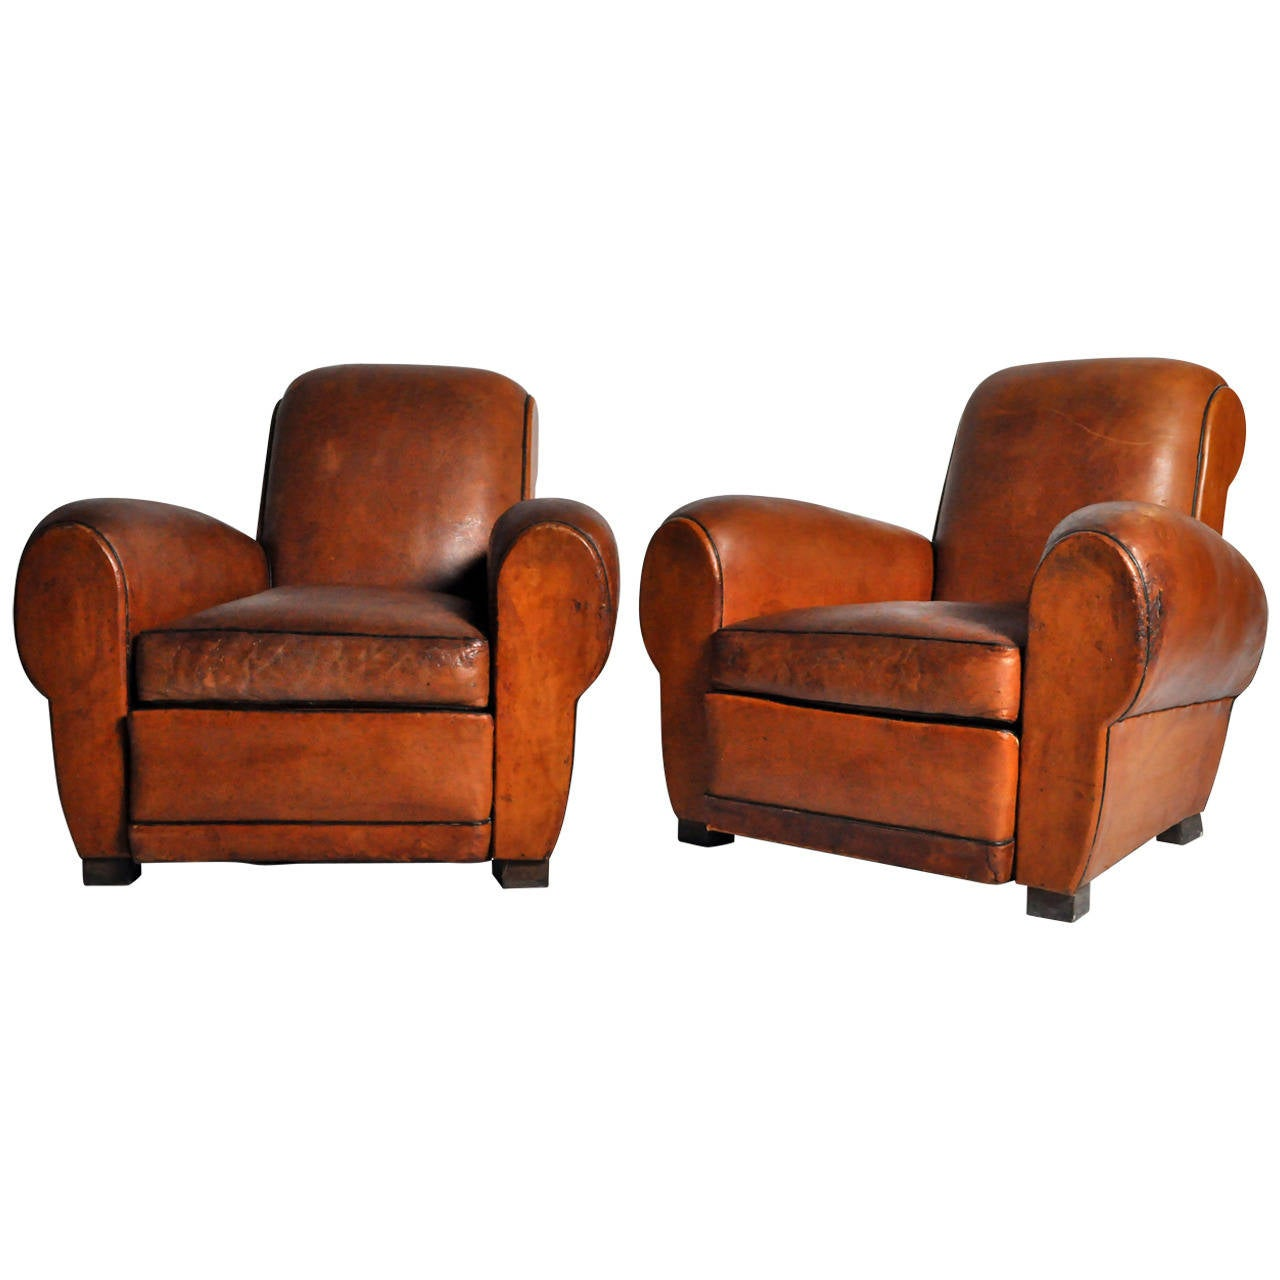 French Art Deco Leather Club Chairs At 1stdibs